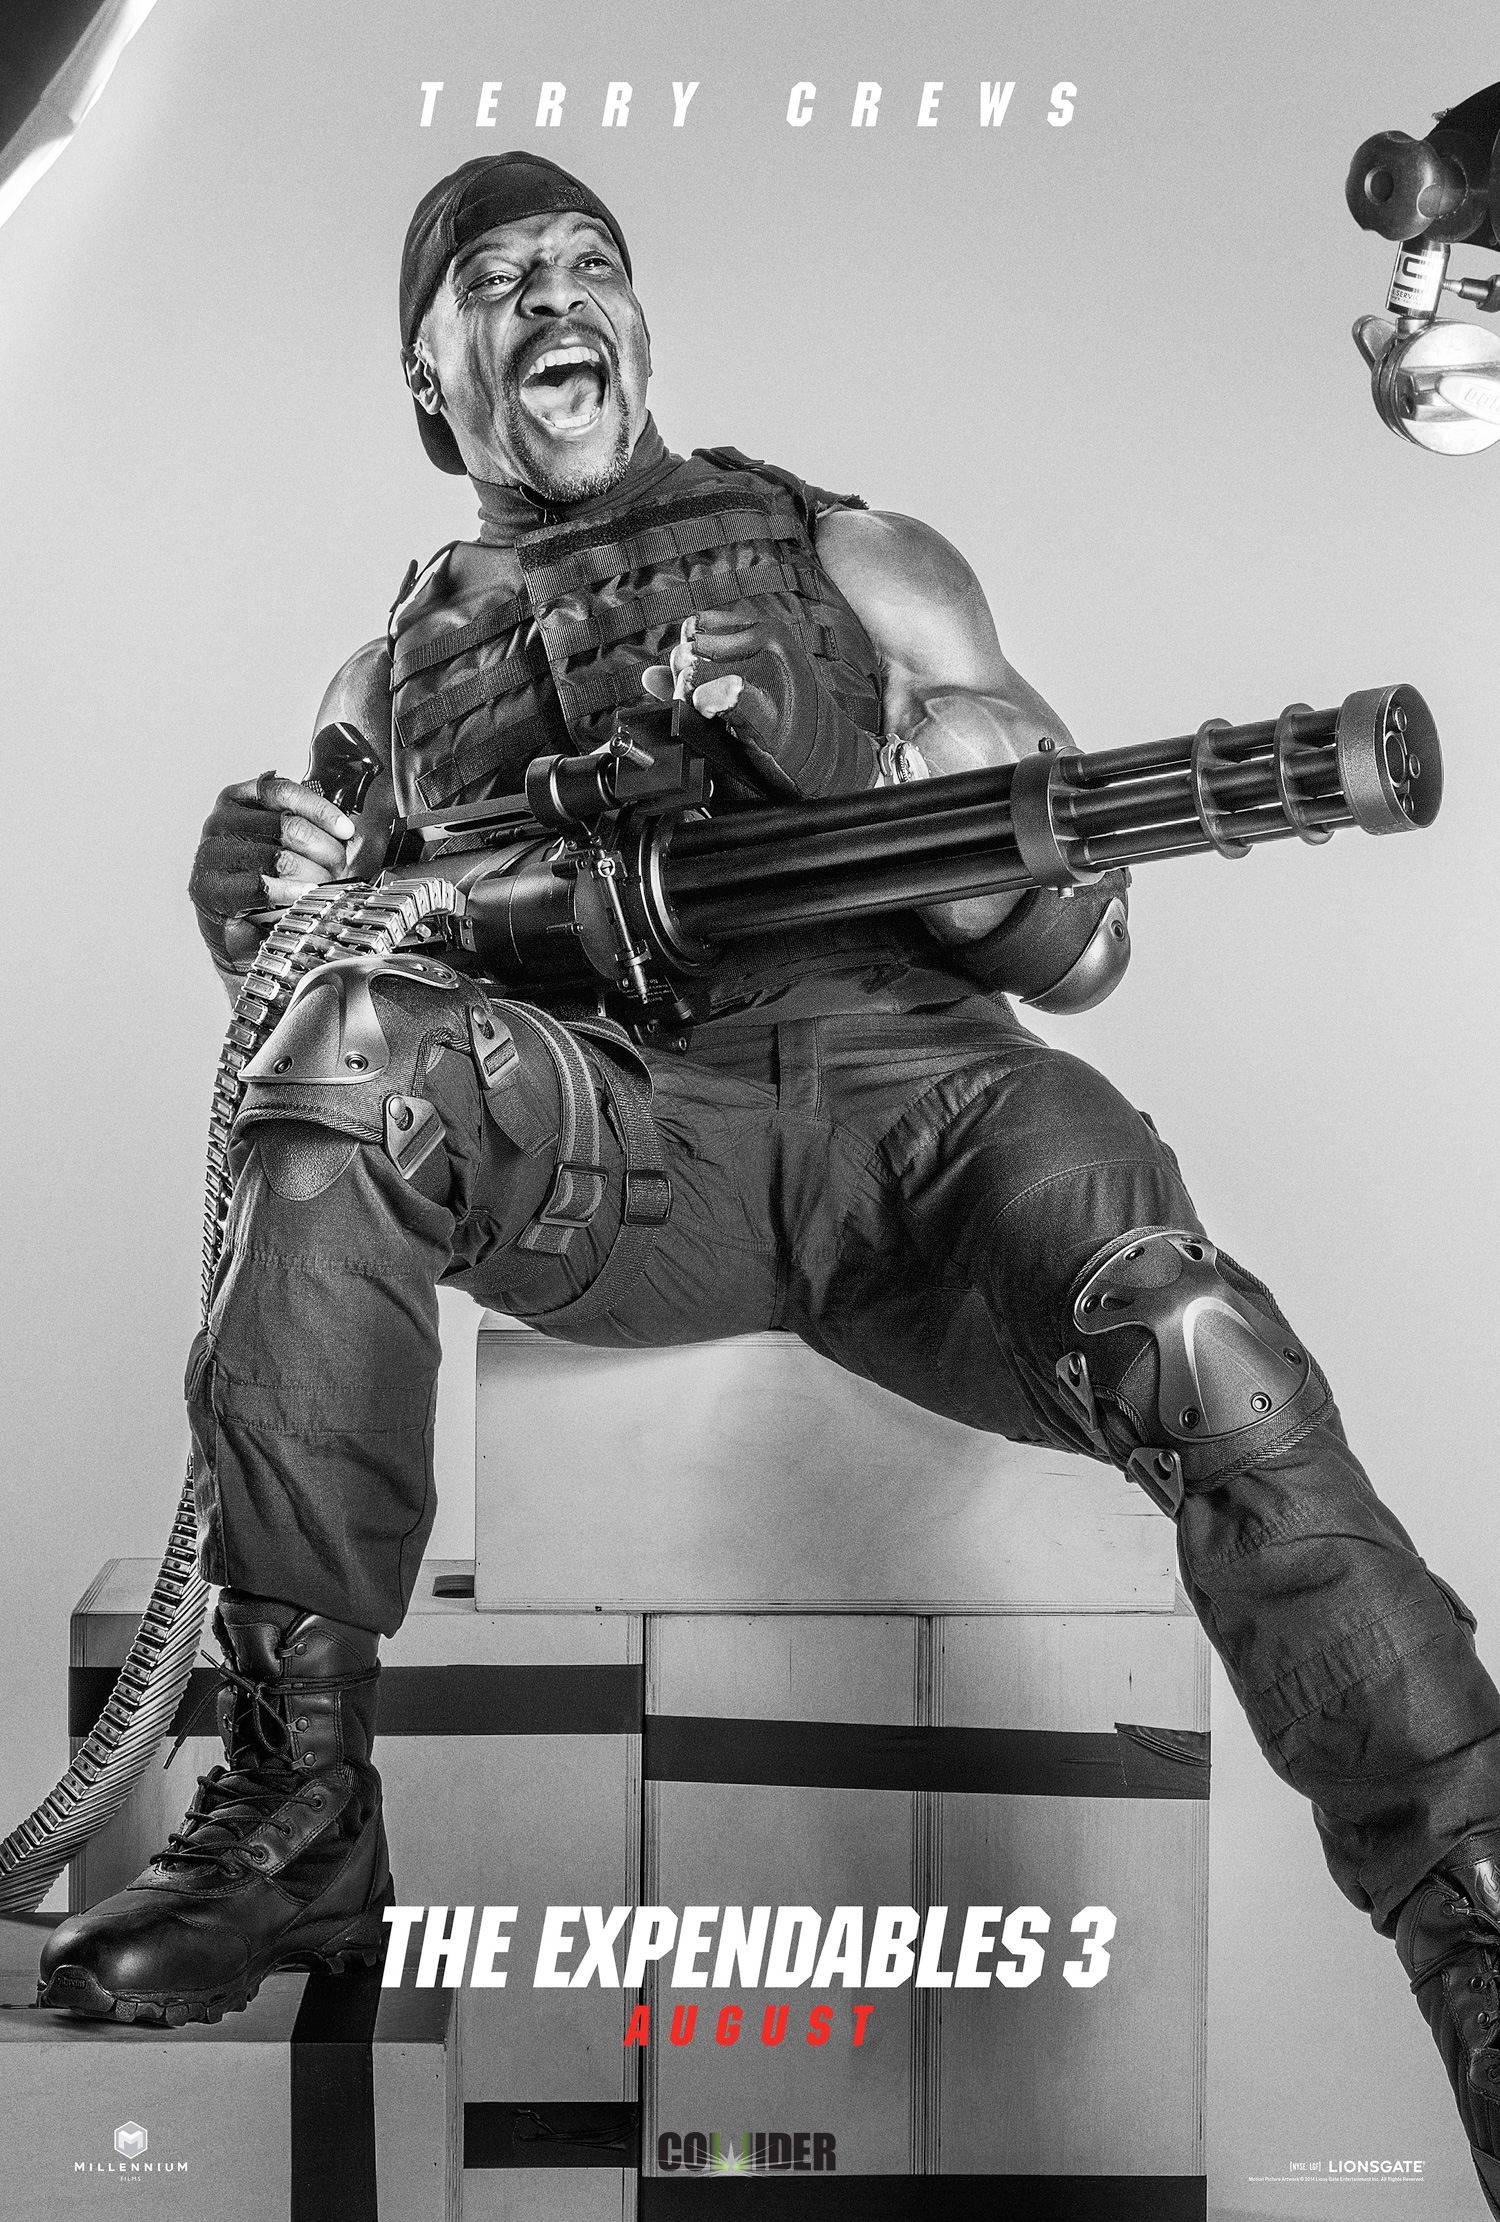 Expendables 3 - Terry Crews